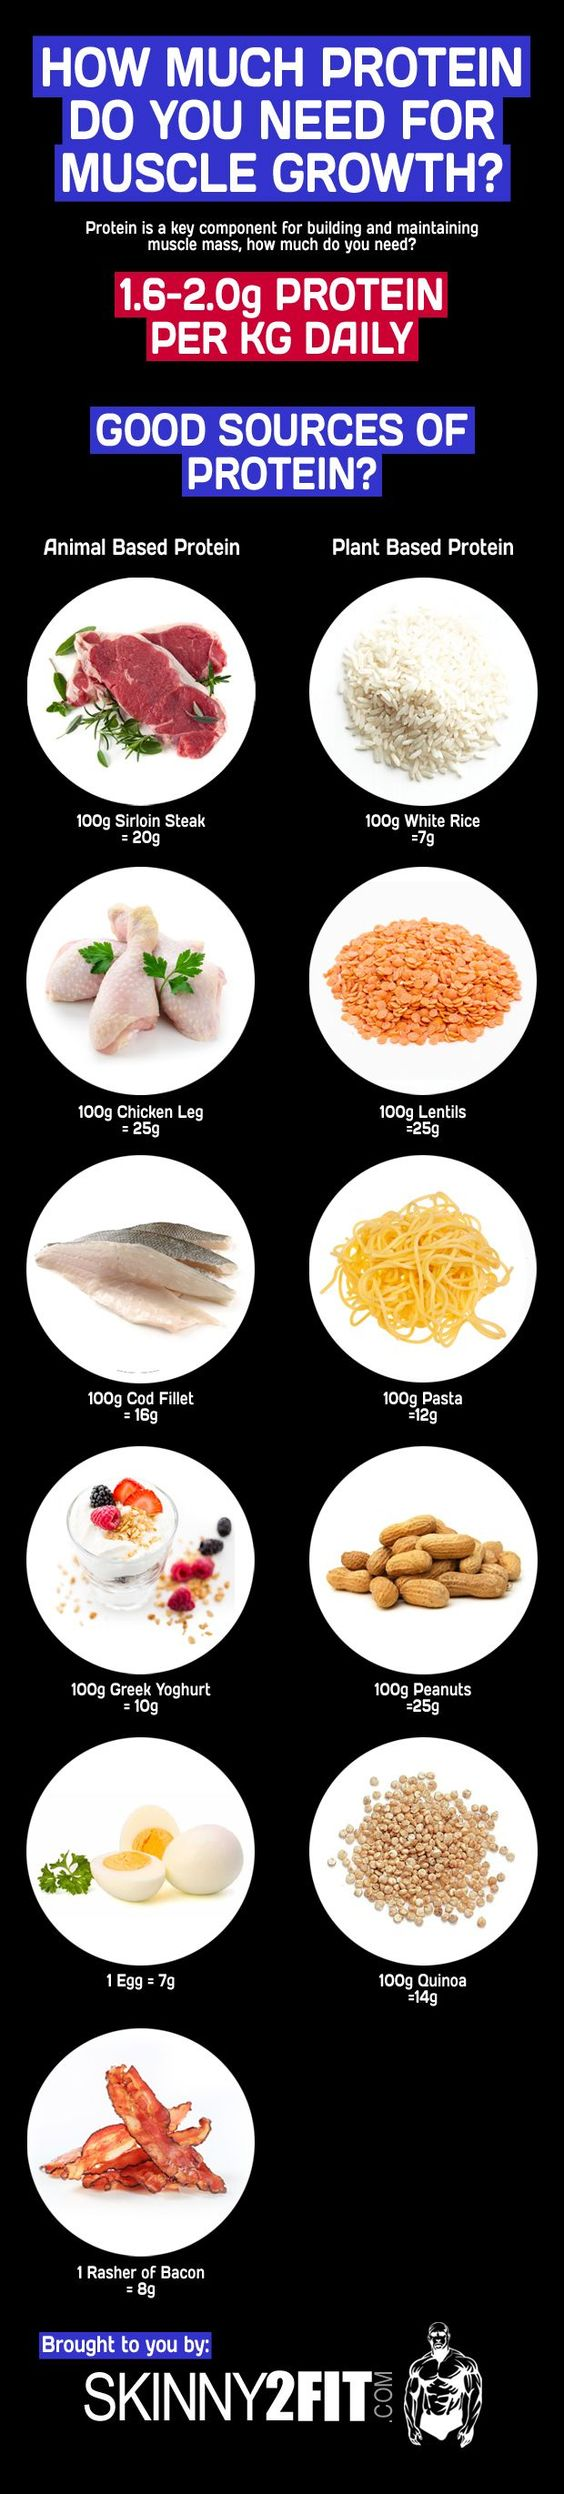 protein for muscle growth